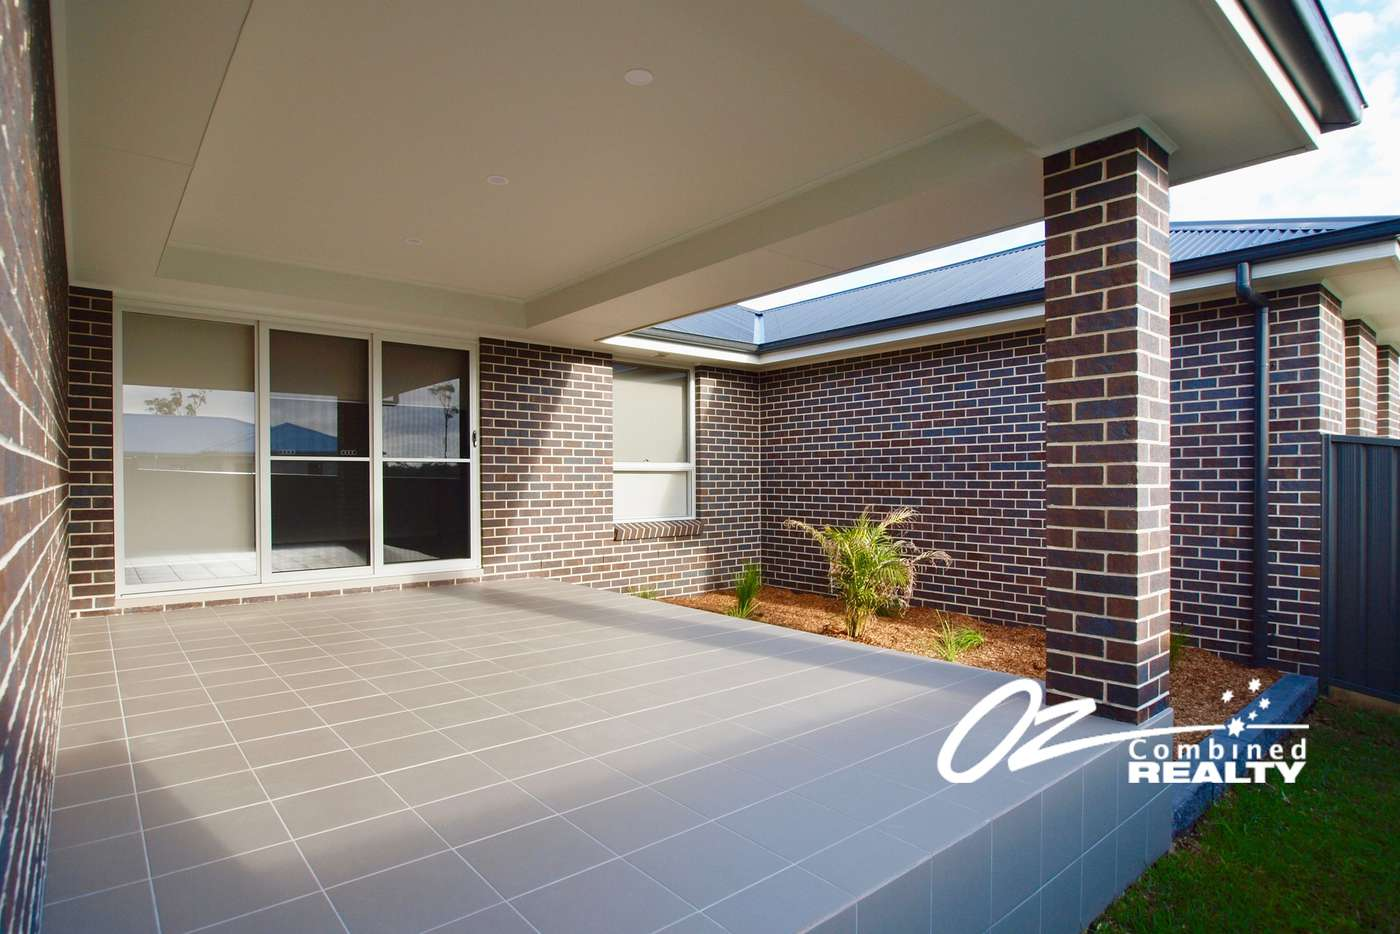 Fifth view of Homely house listing, 35 Bayswood Avenue, Vincentia NSW 2540